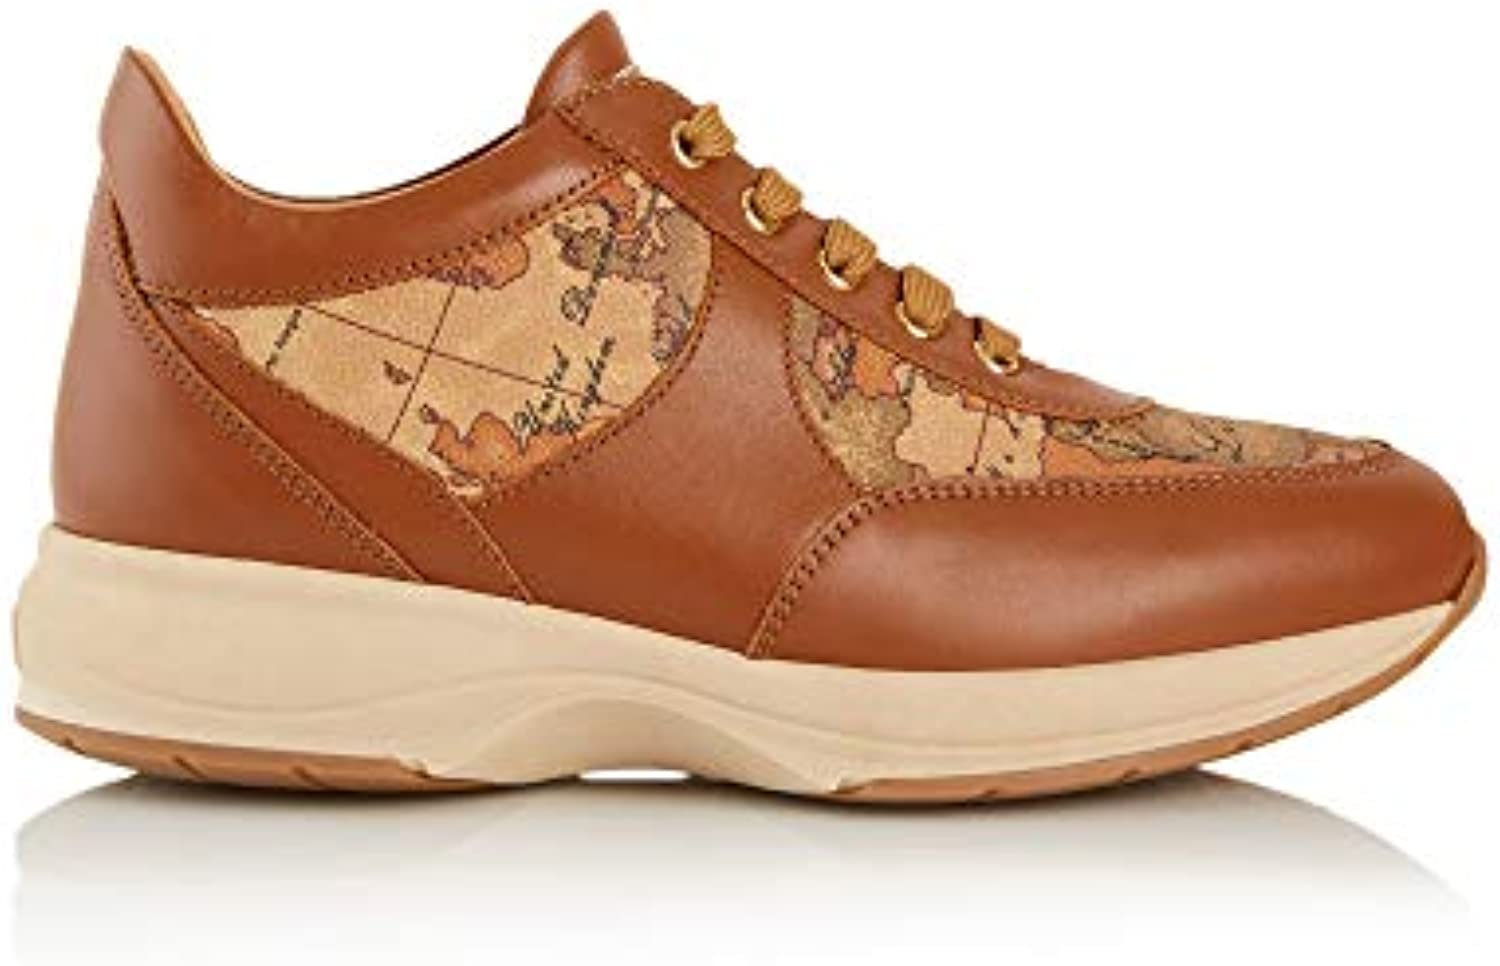 Classe Martini 35 Tabacco 1 Alviero Sneakers Femme aERw4axT